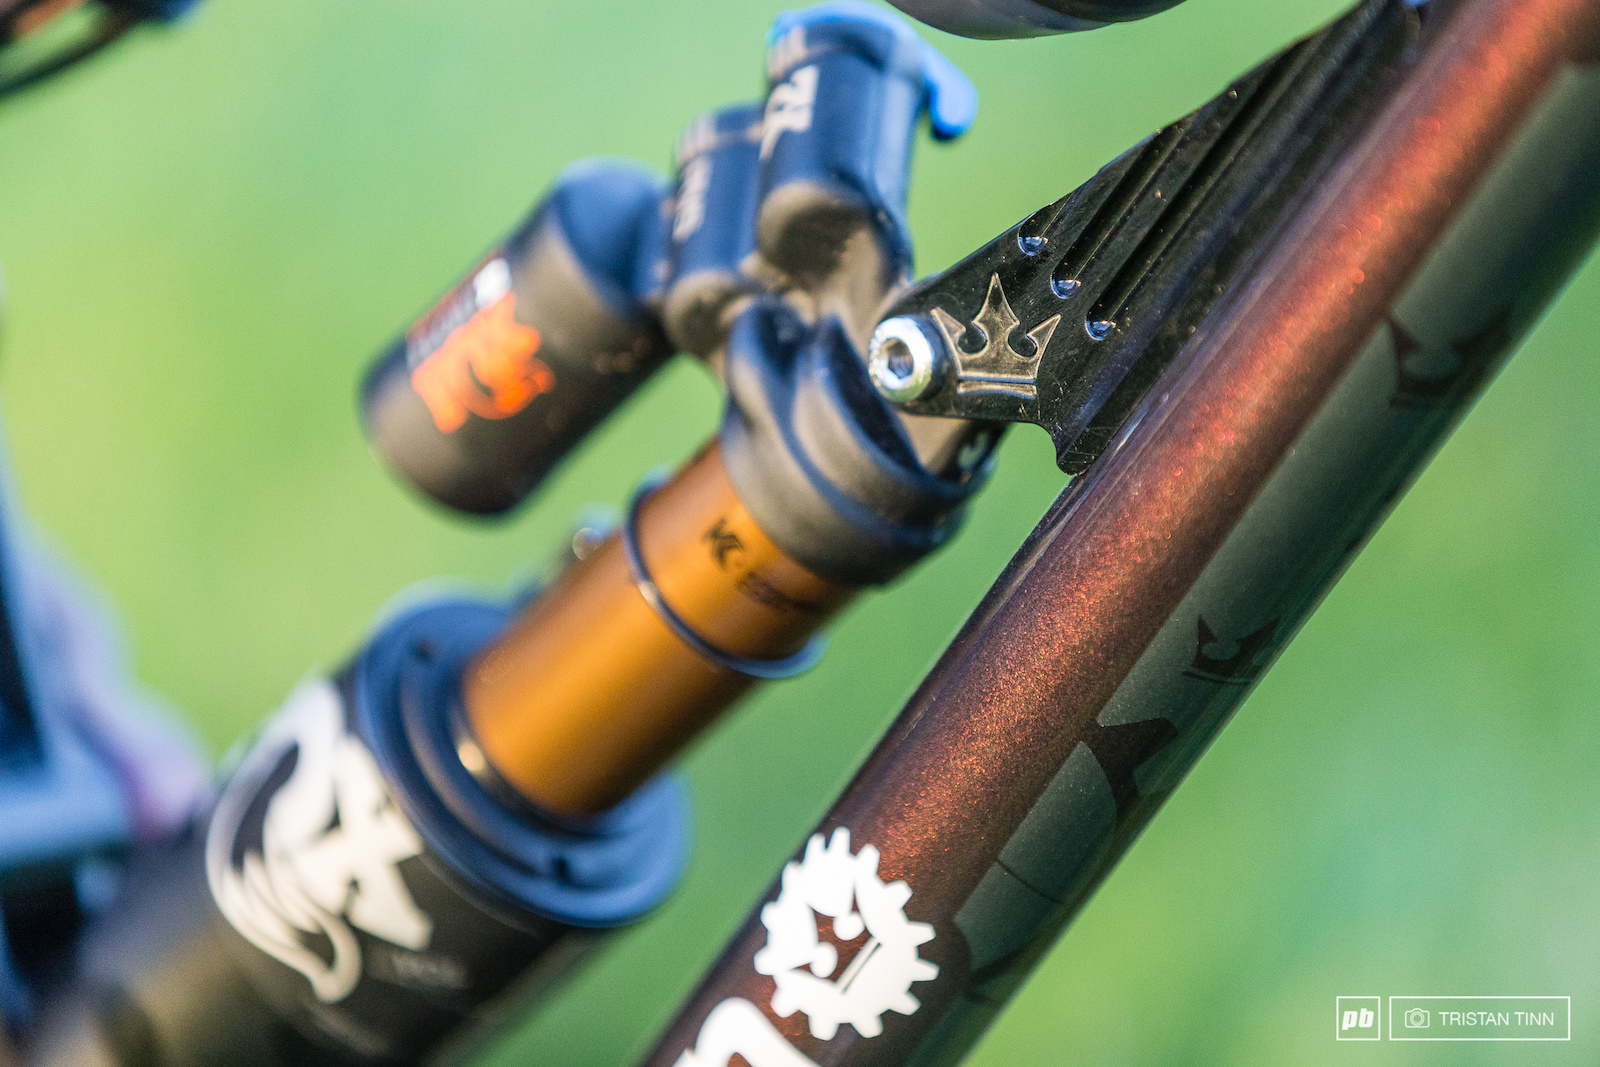 The iridescent black lava finish works well with kashima and a simple wite decal